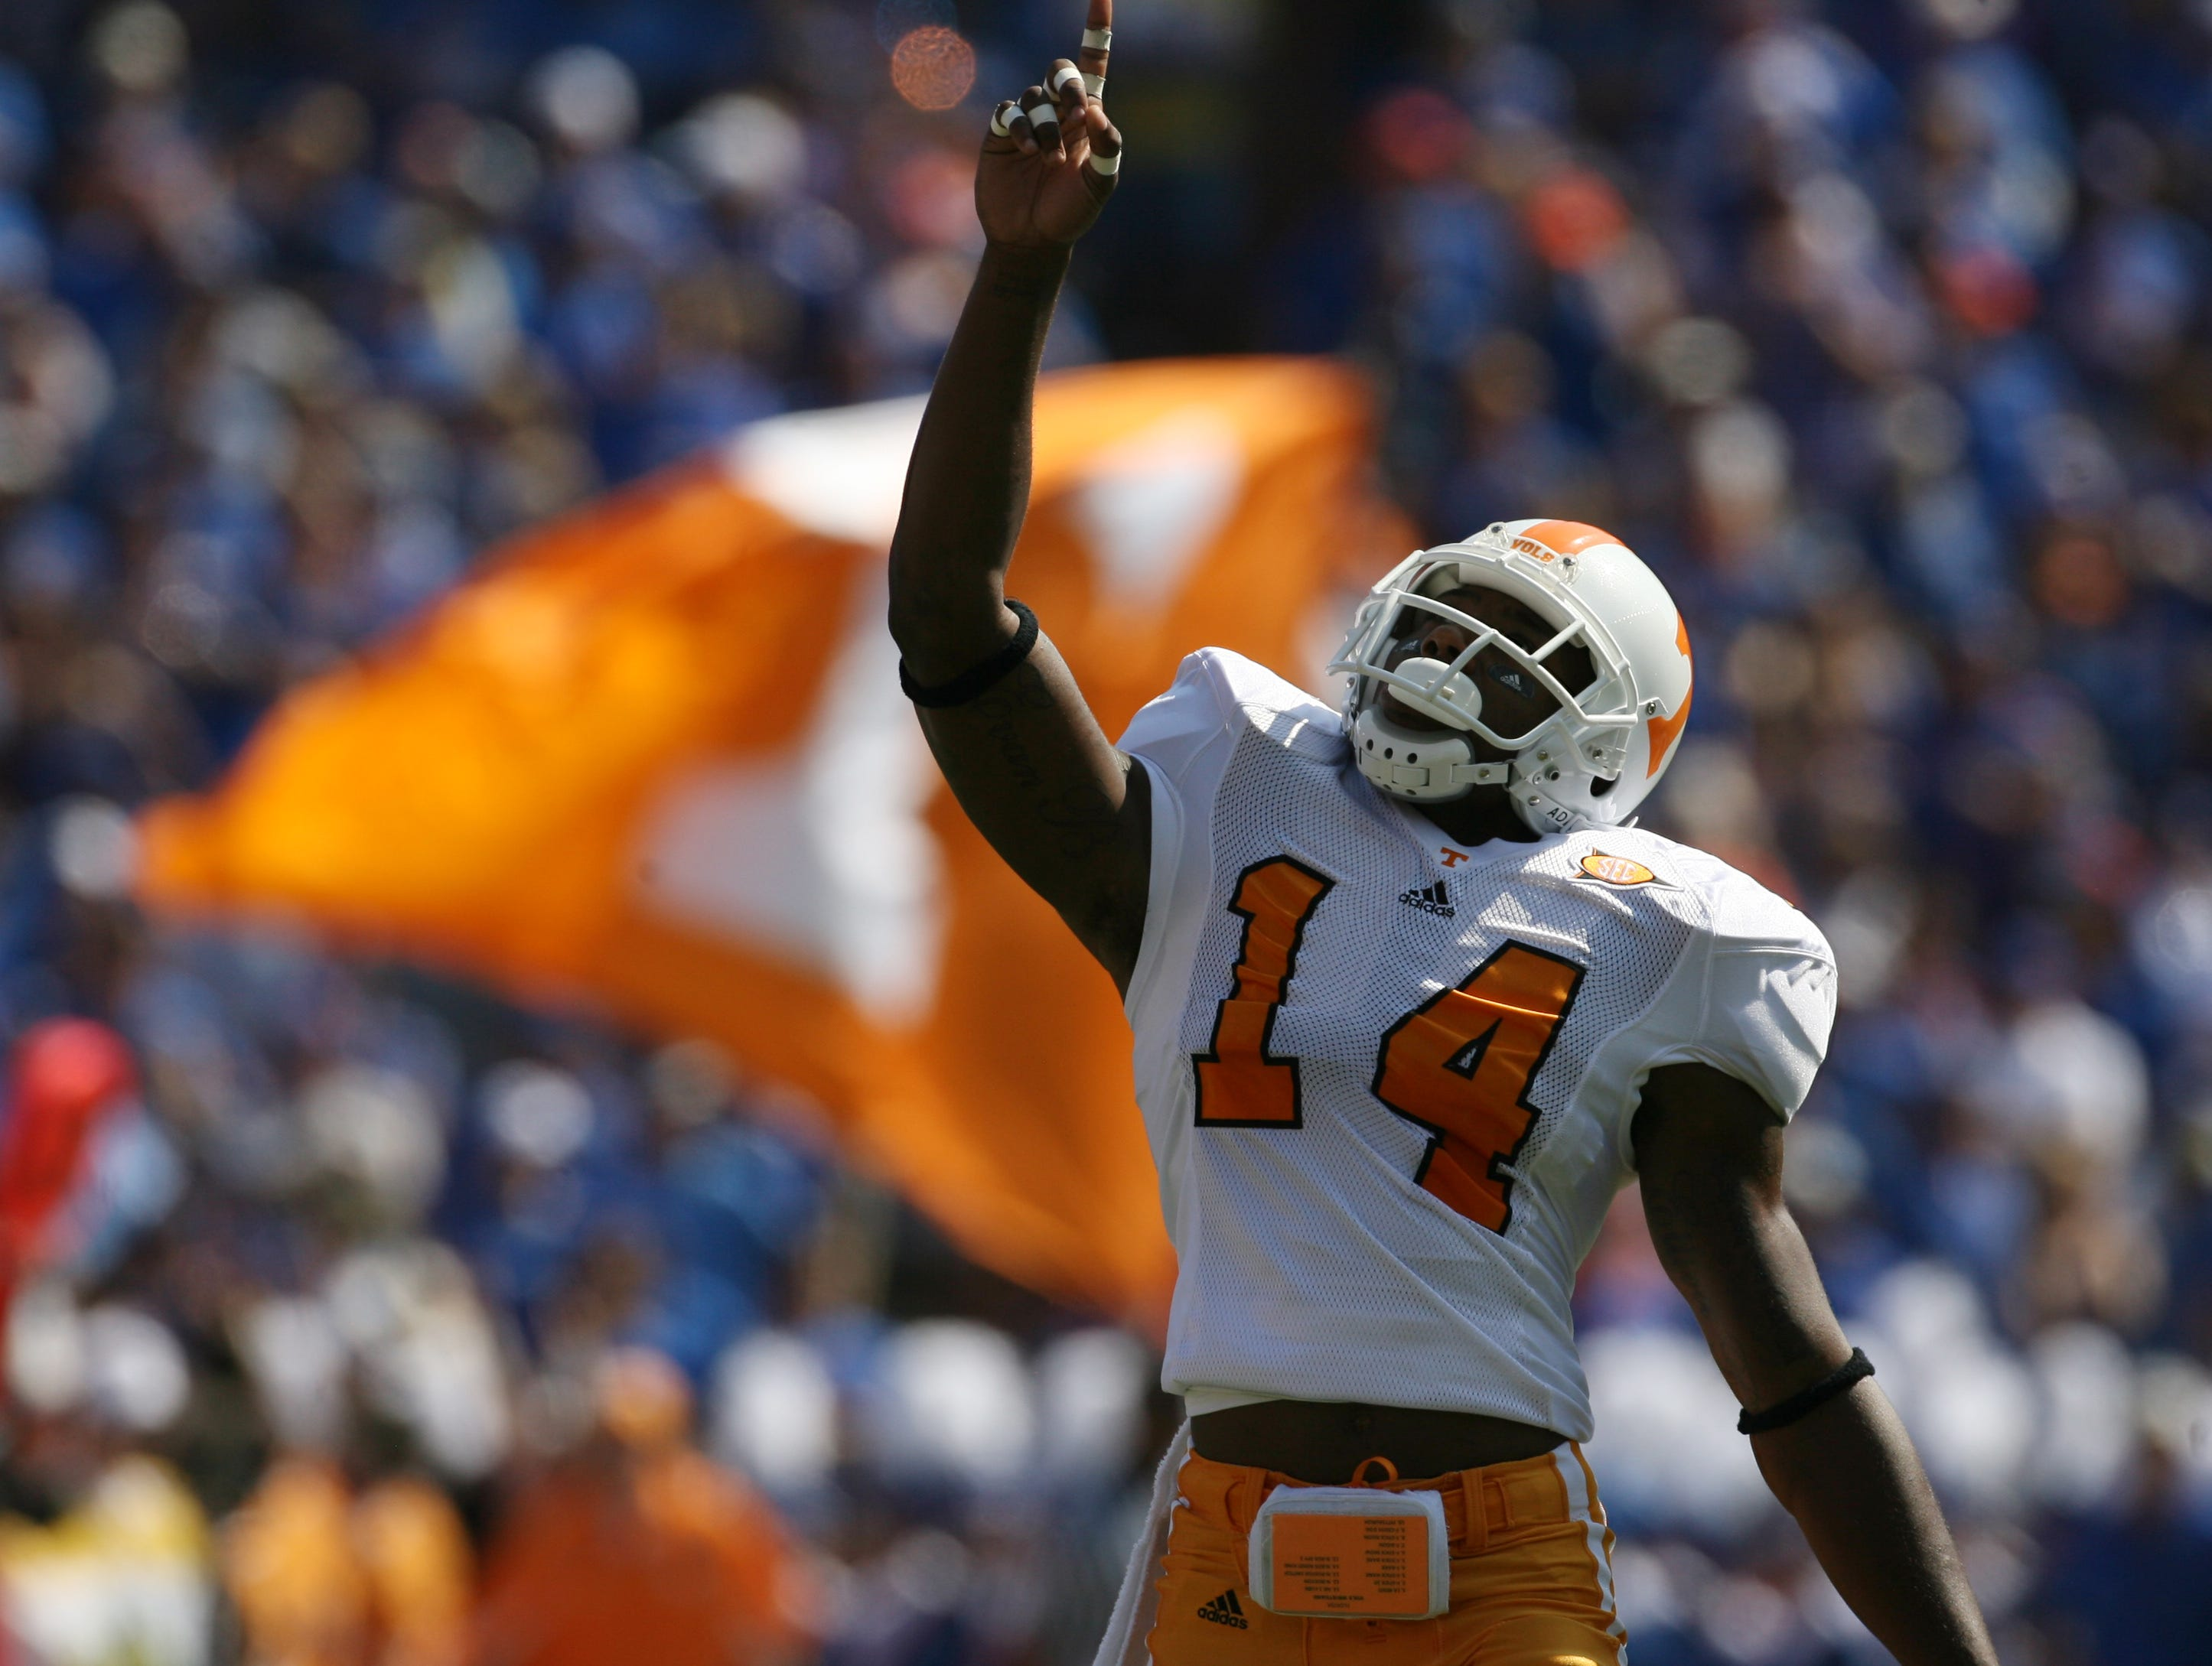 Tennessee cornerback Eric Berry (14) points to the sky before kickoff against Florida on Sept. 19, 2009 at Ben Hill Griffin Stadium in Gainesville, Fla.